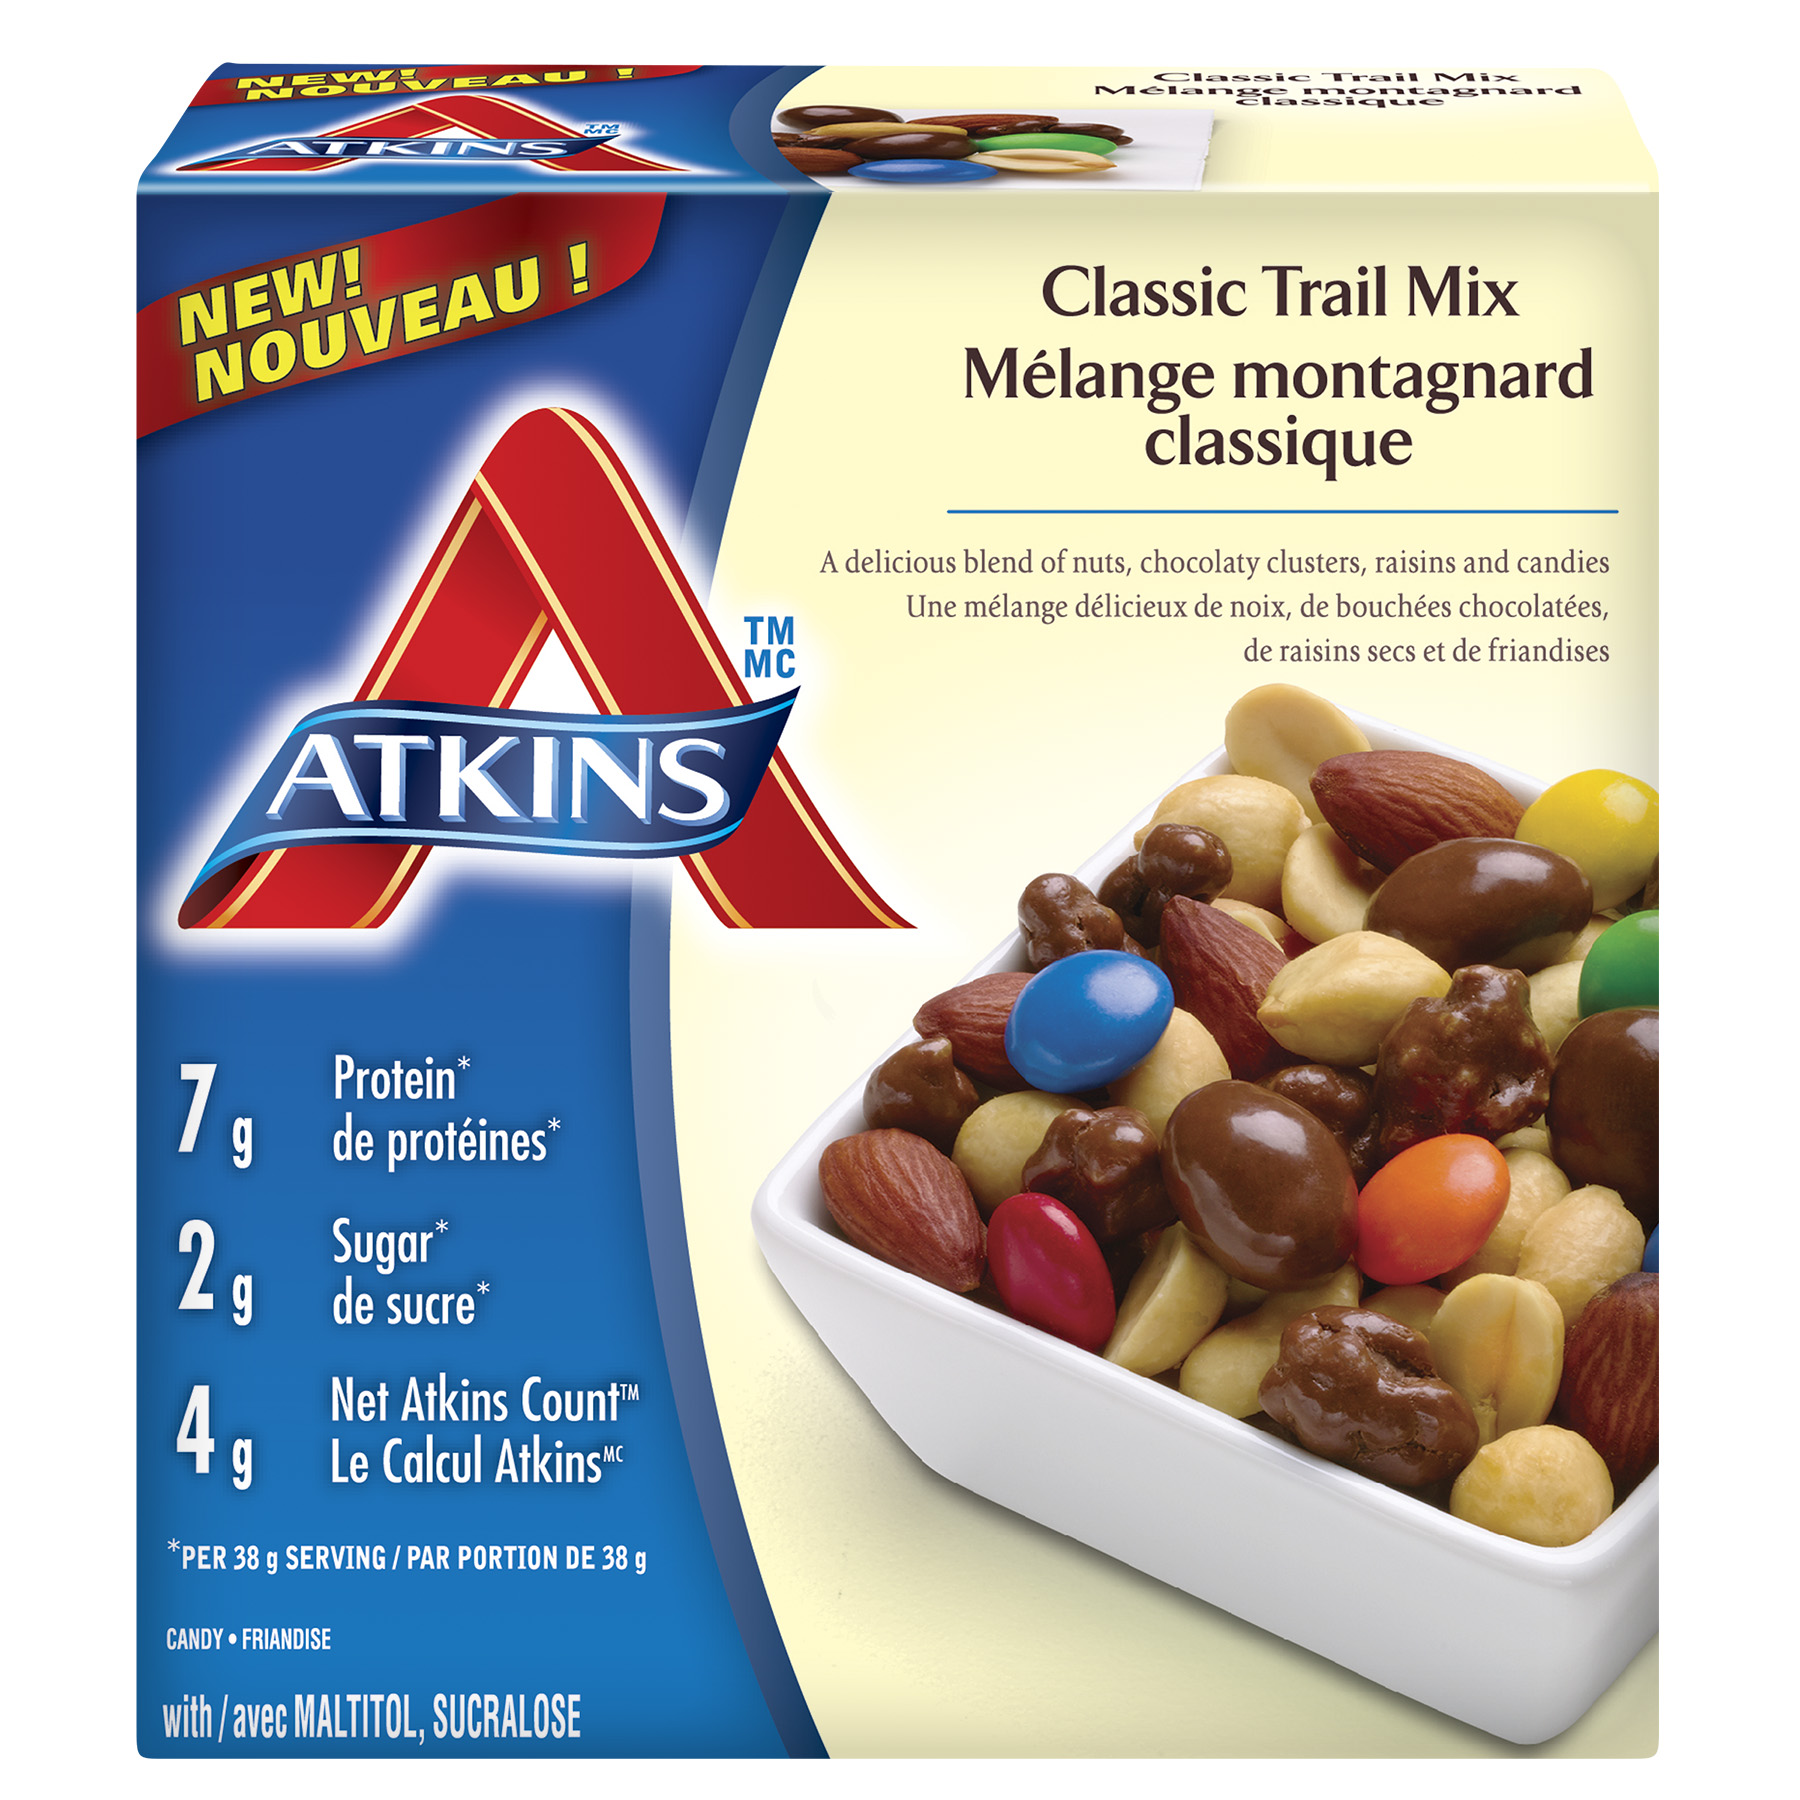 Trail Mix For A Low Carb Diet Atkins Atkins